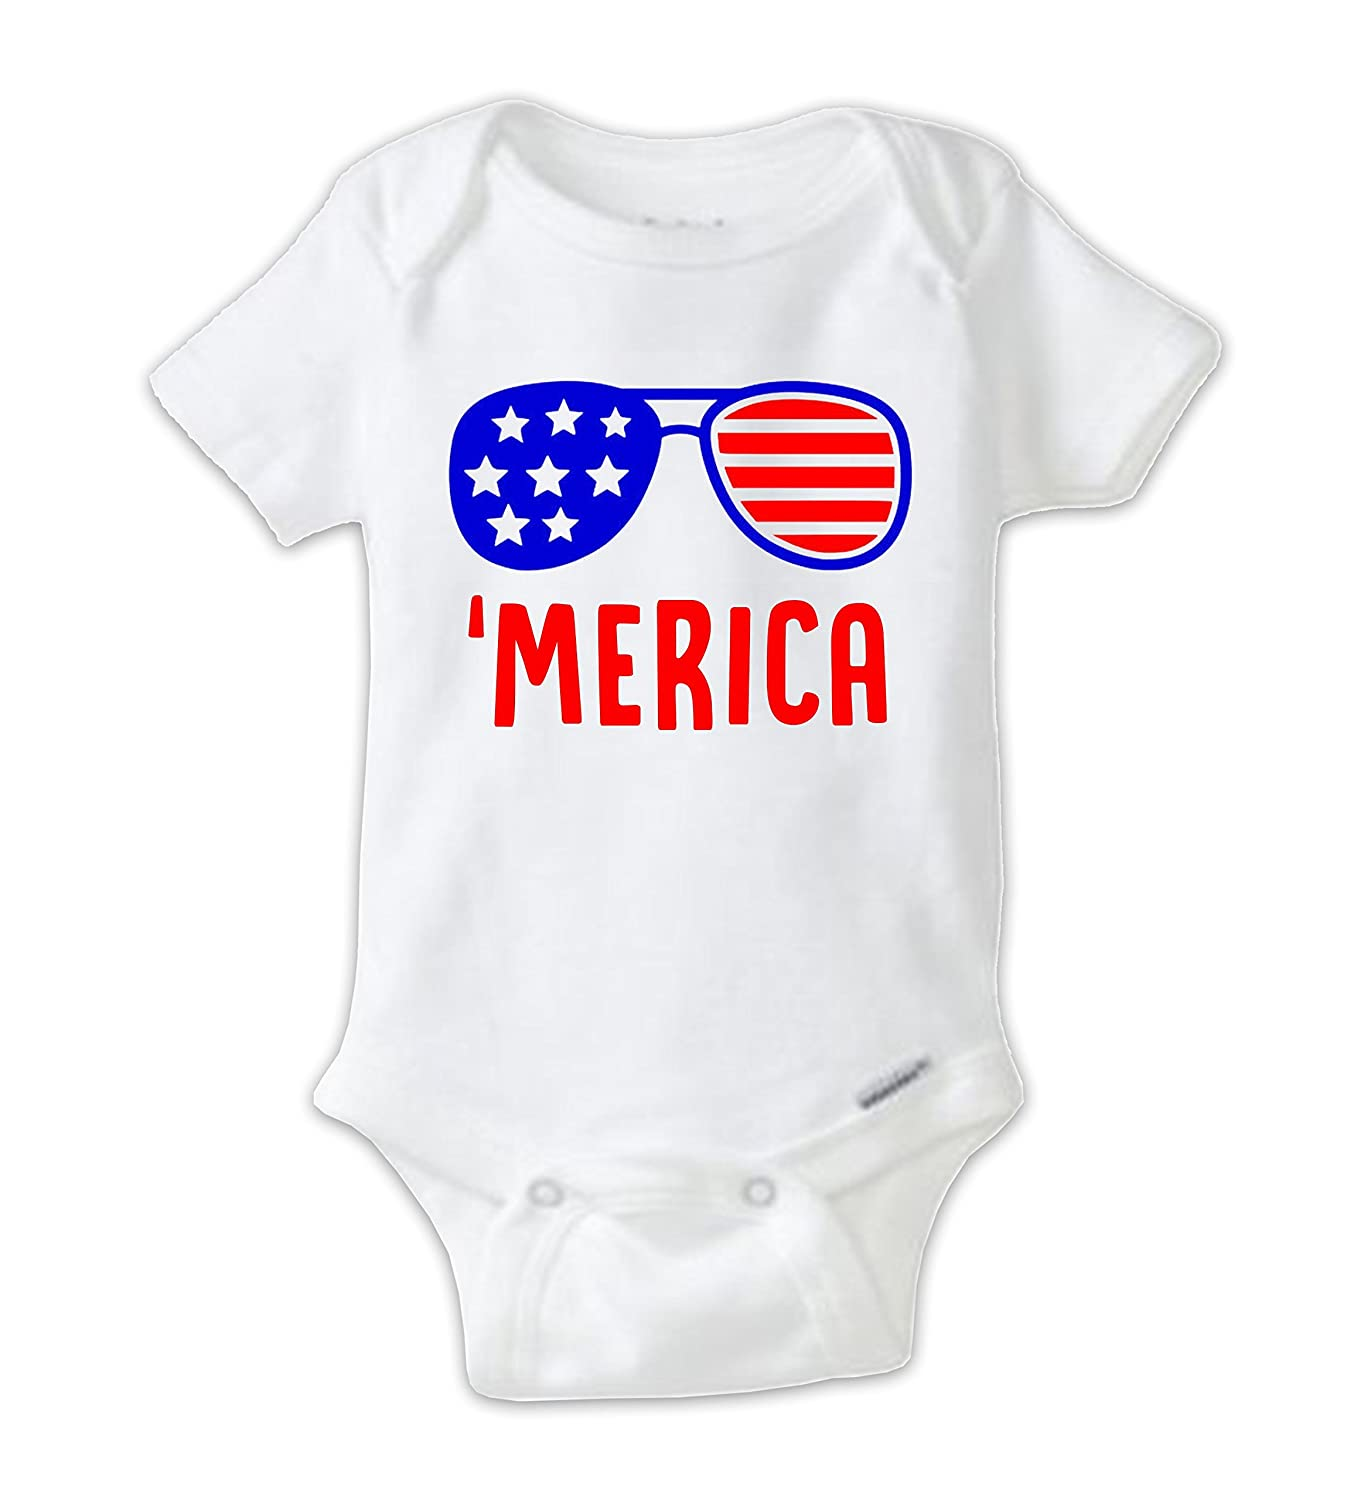 03a70ea7 Juju Apparel Labor Day Onesie, Labor Day Baby Shirt, Merica Onesie Baby  Bodysuit